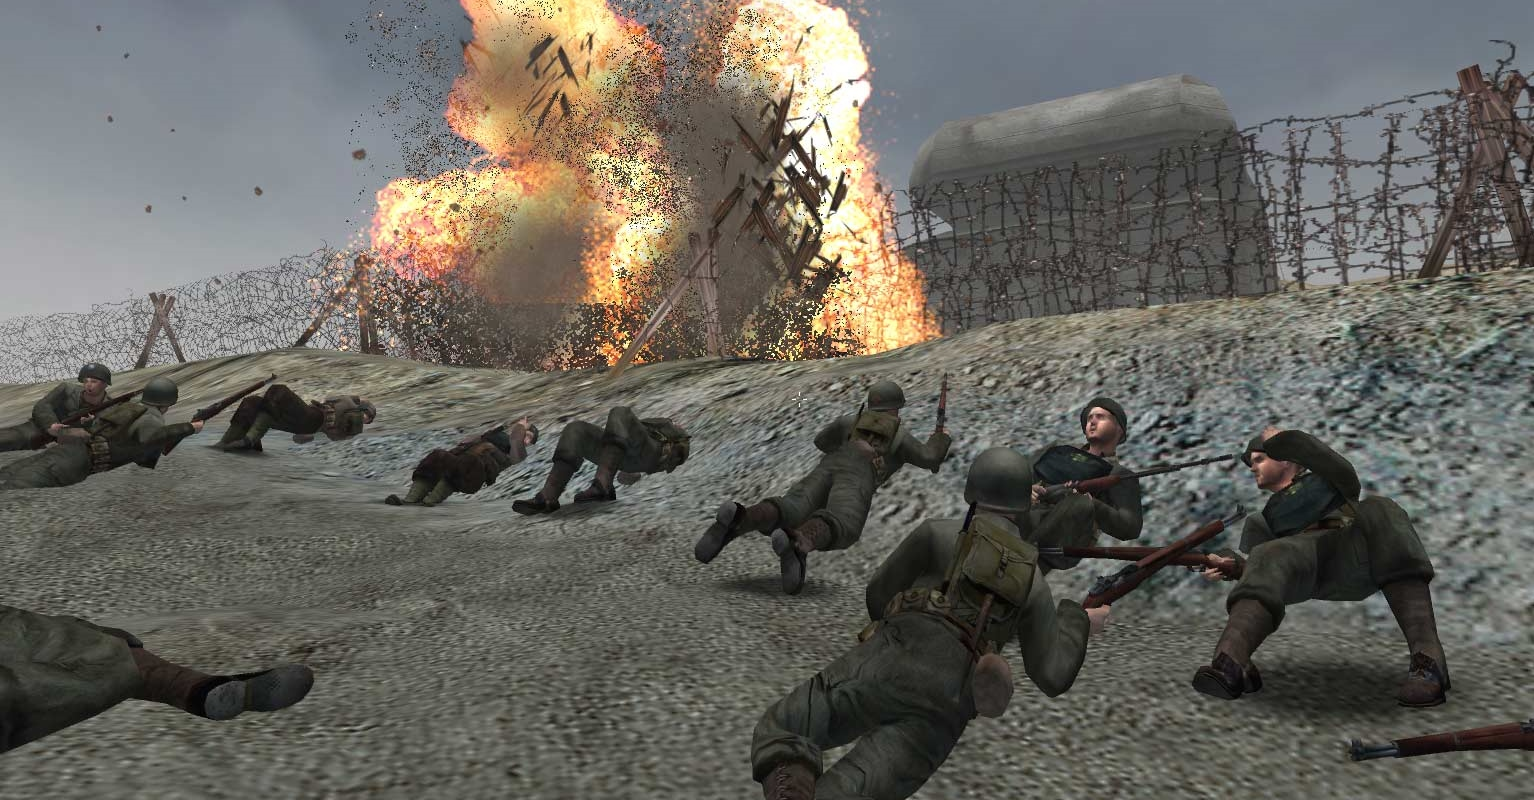 Peter's Most Influential FPS Games Image 4